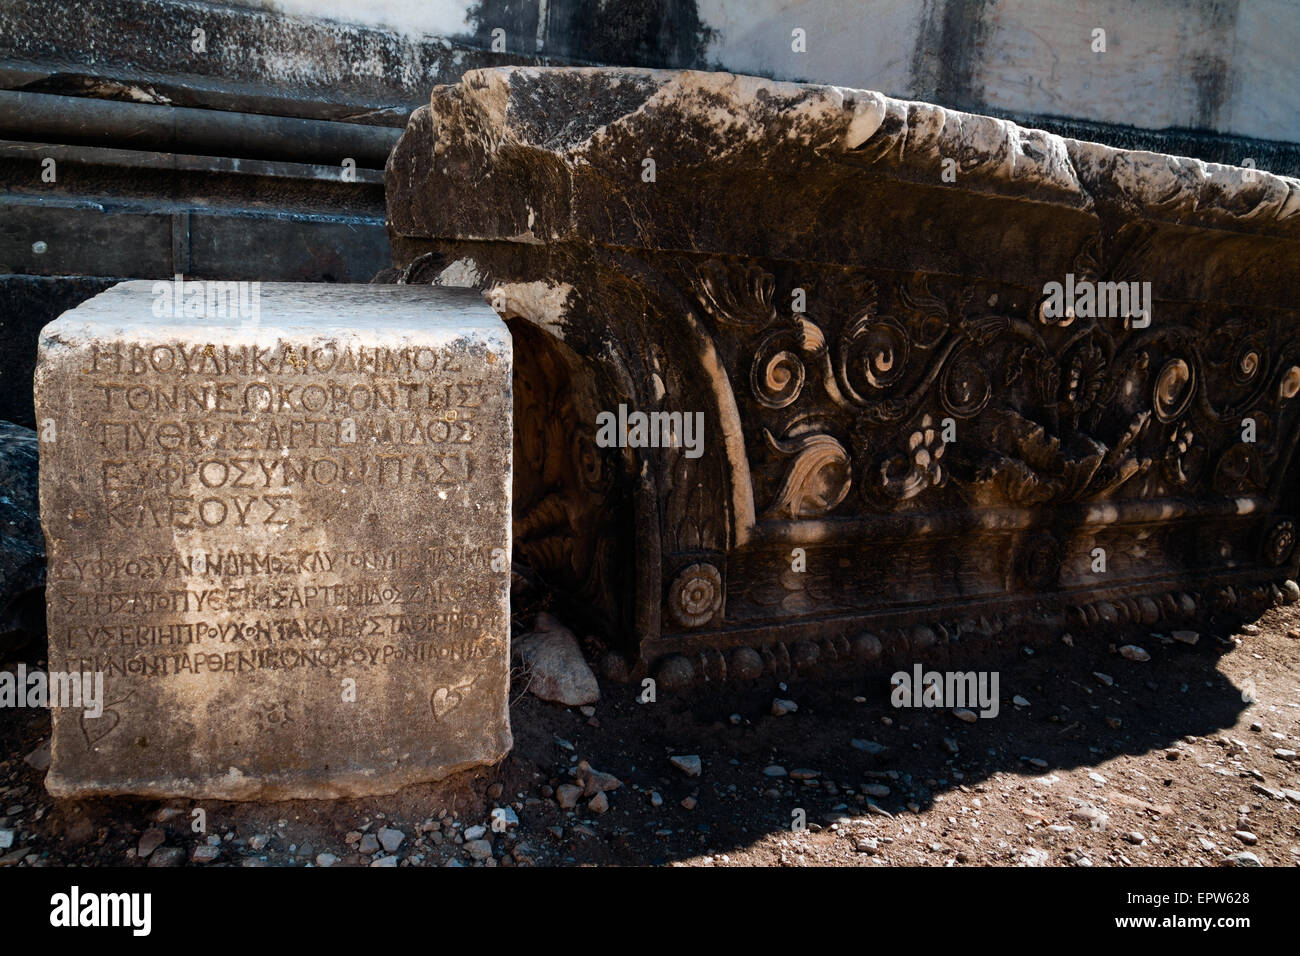 Stone block ancient greek inscriptions - Stock Image